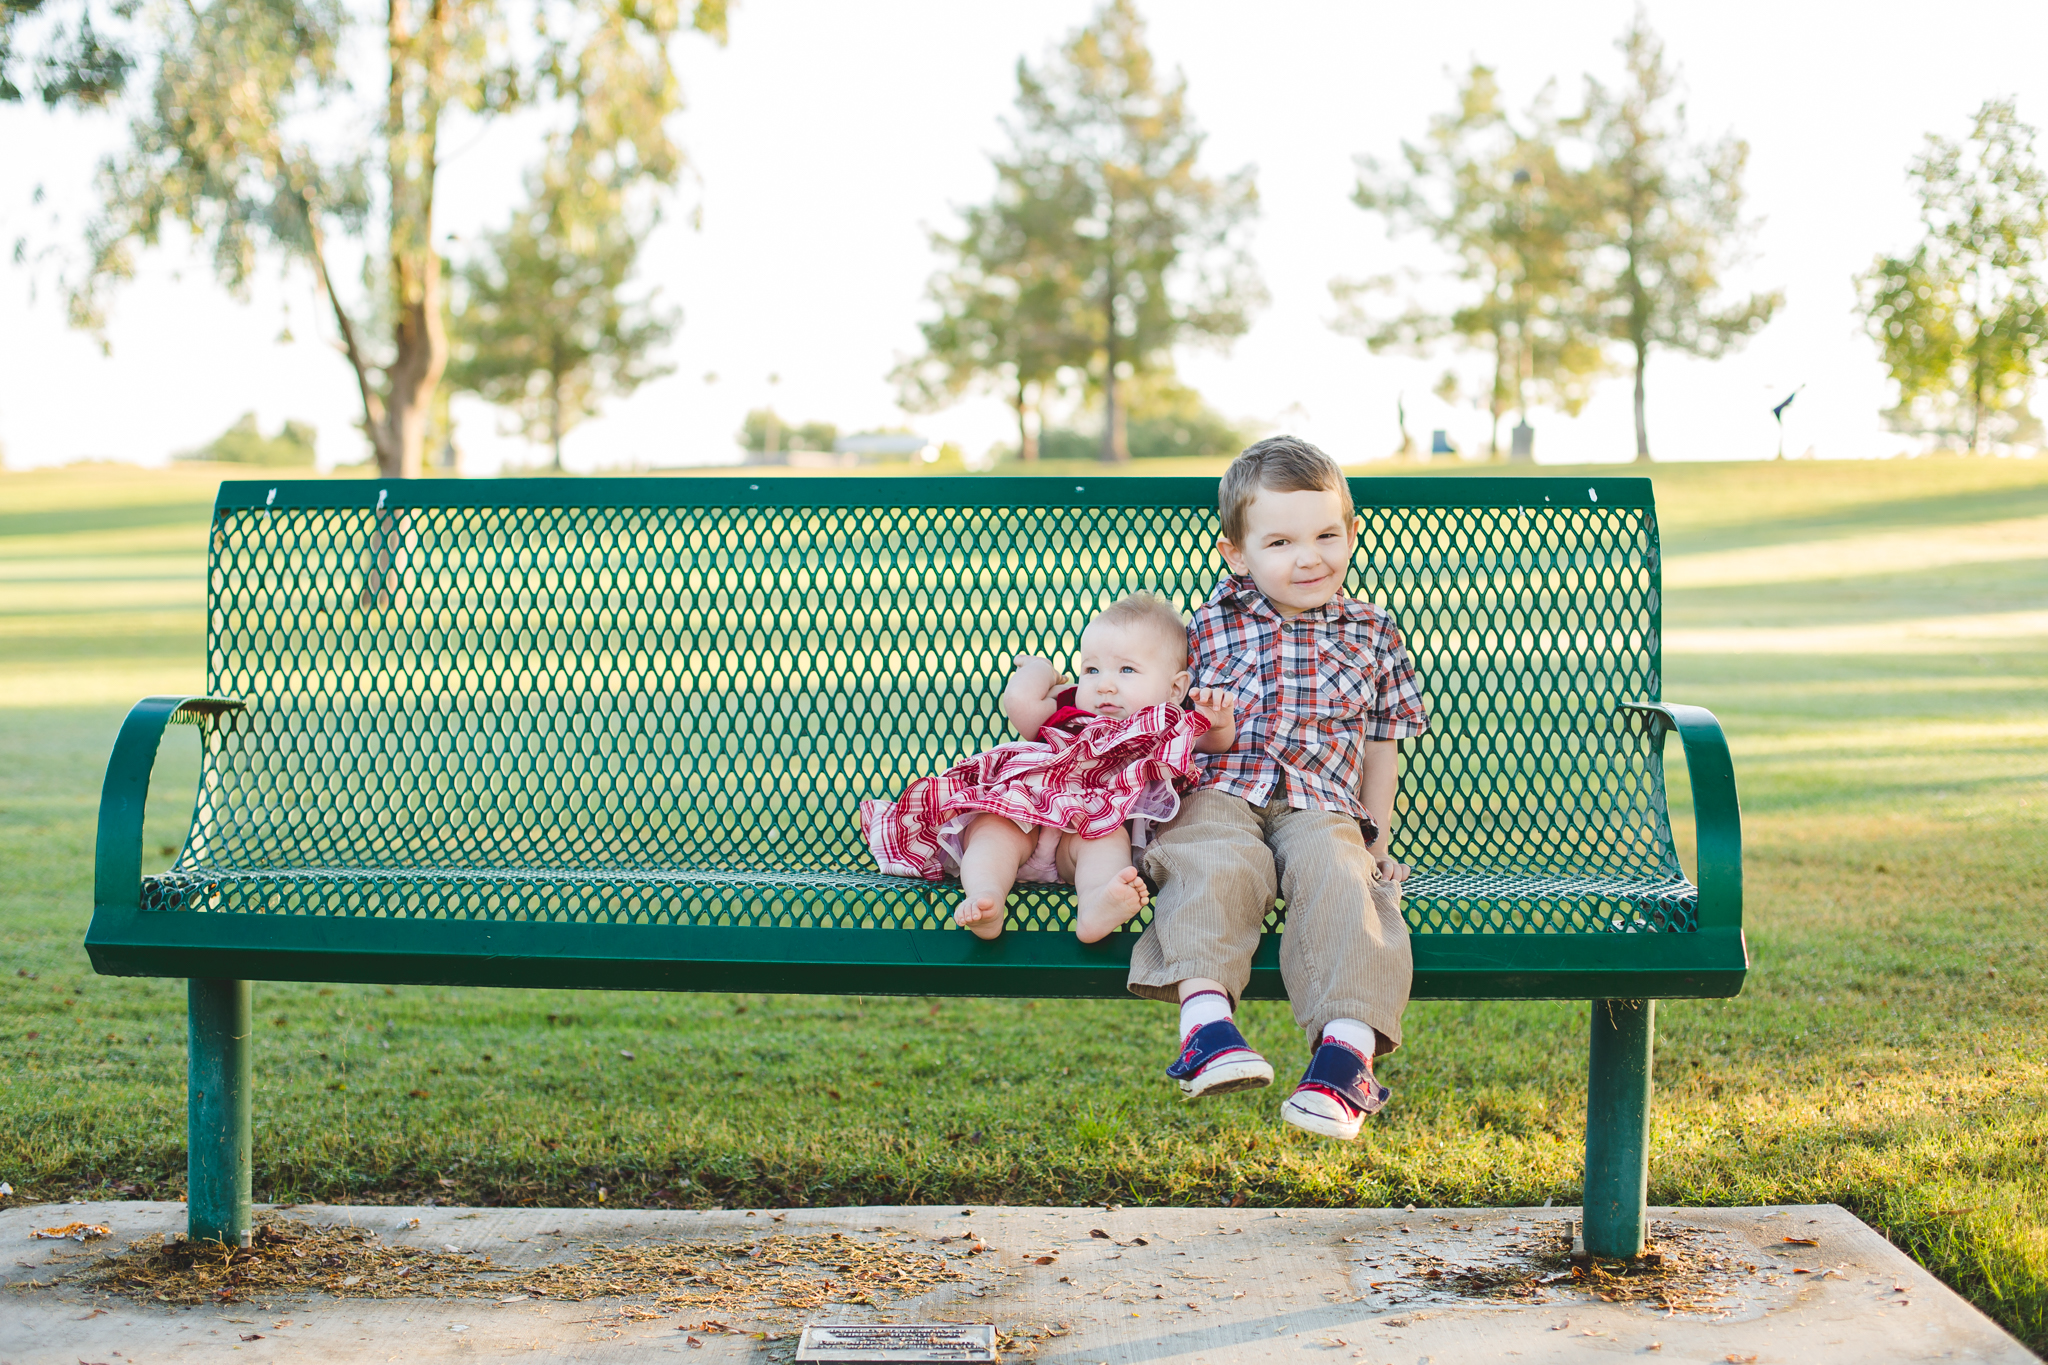 reed and amelia share a bench